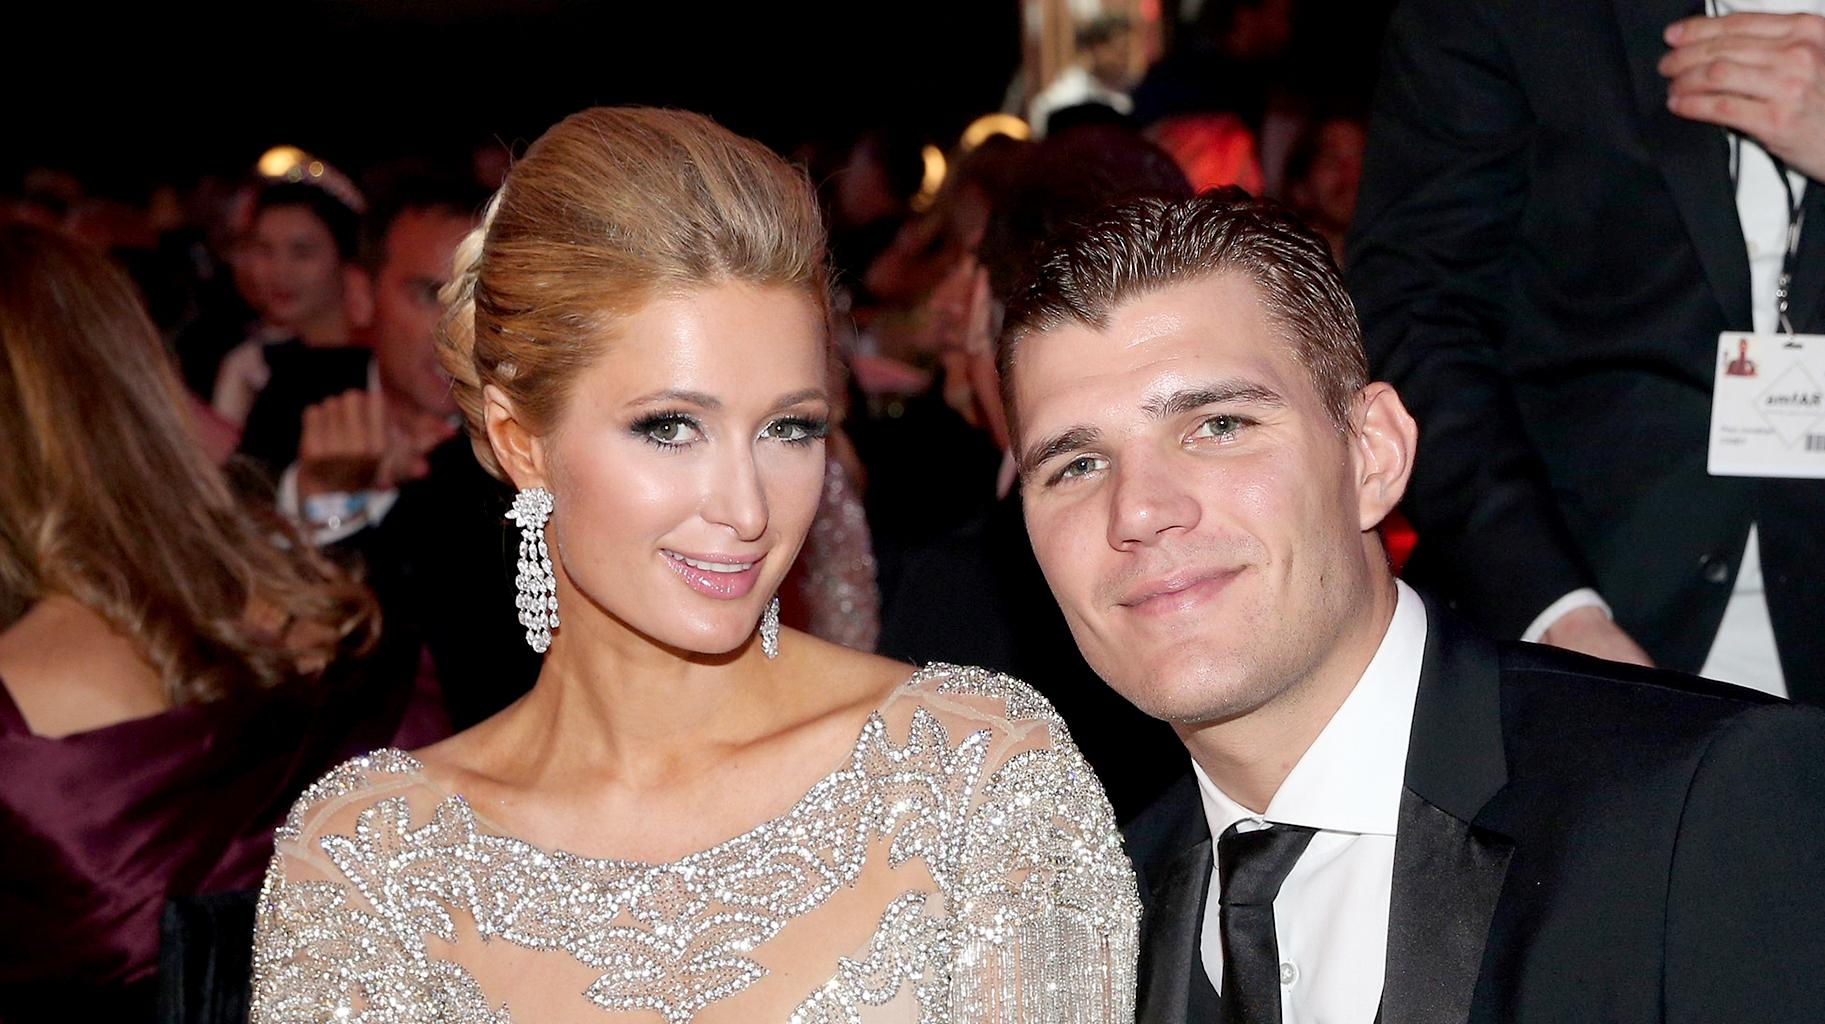 Paris Hilton's Ex-Fiance Chris Zylka Suggests They Might Reunite - 'We Still Love Each Other'